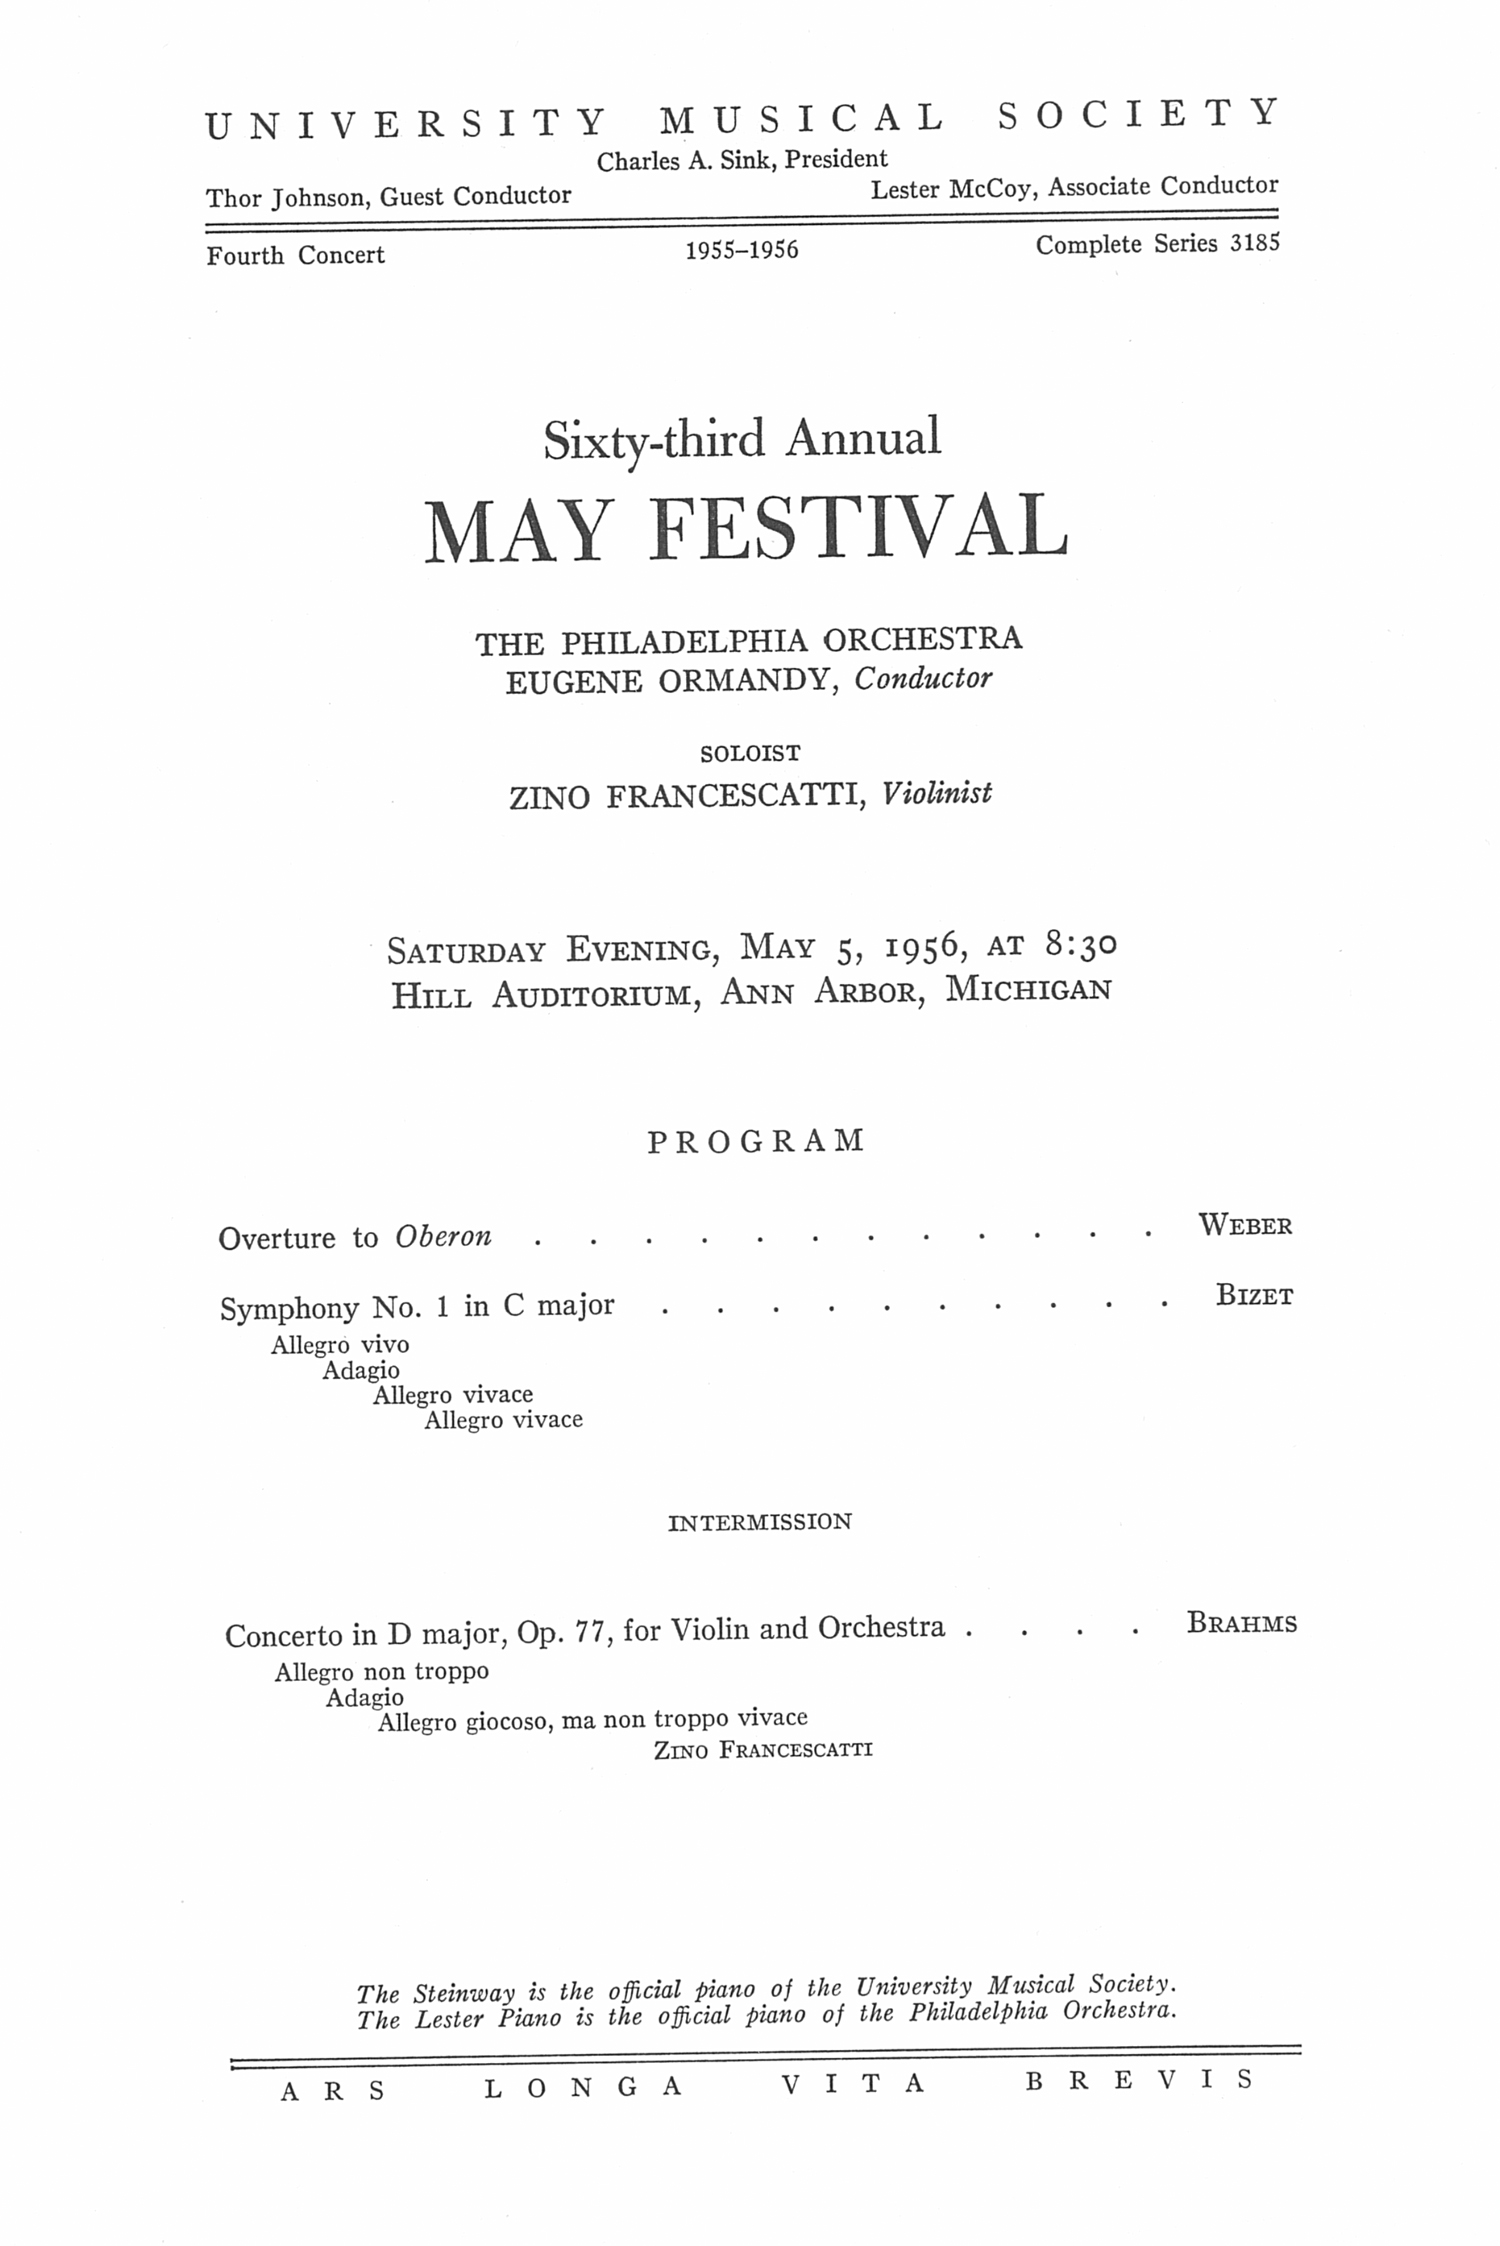 UMS Concert Program, May 5, 1956: Sixty-third Annual May Festival -- The Philadelphia Orchestra image